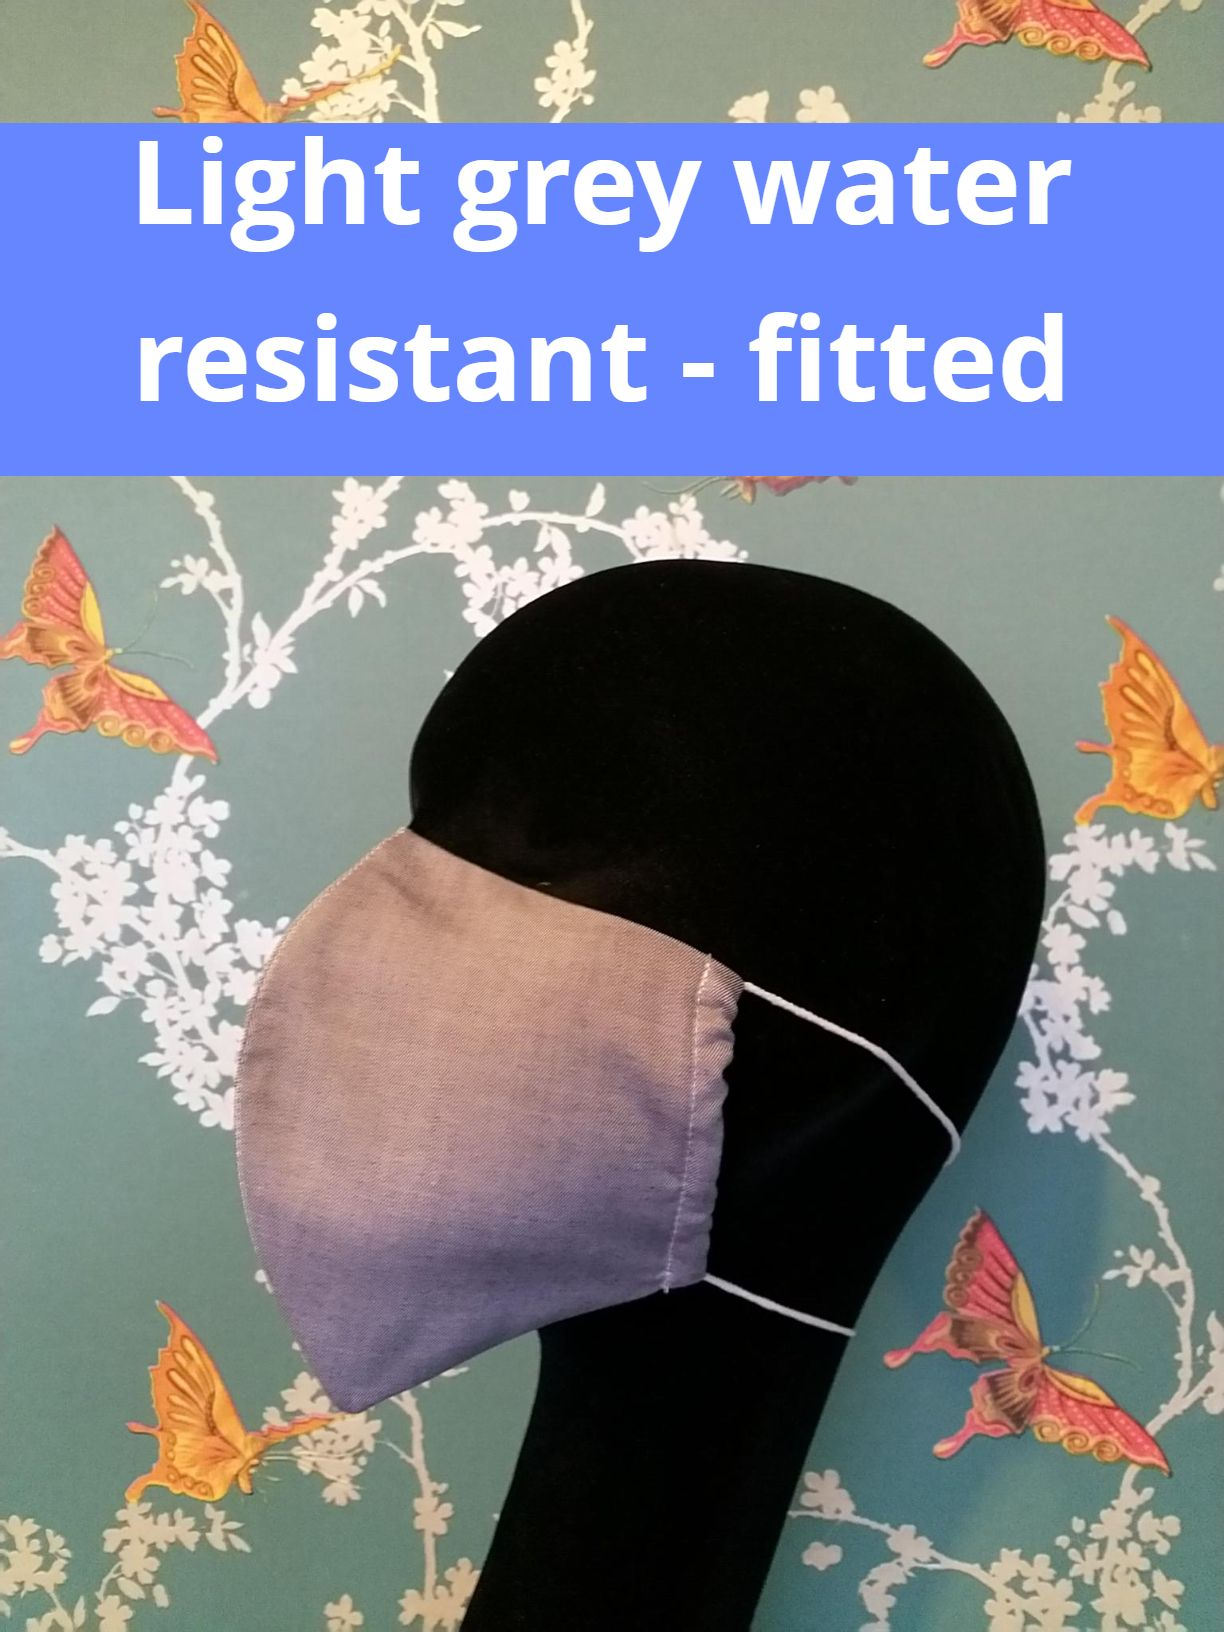 Water resistant 100% cotton shirt fabric face masks